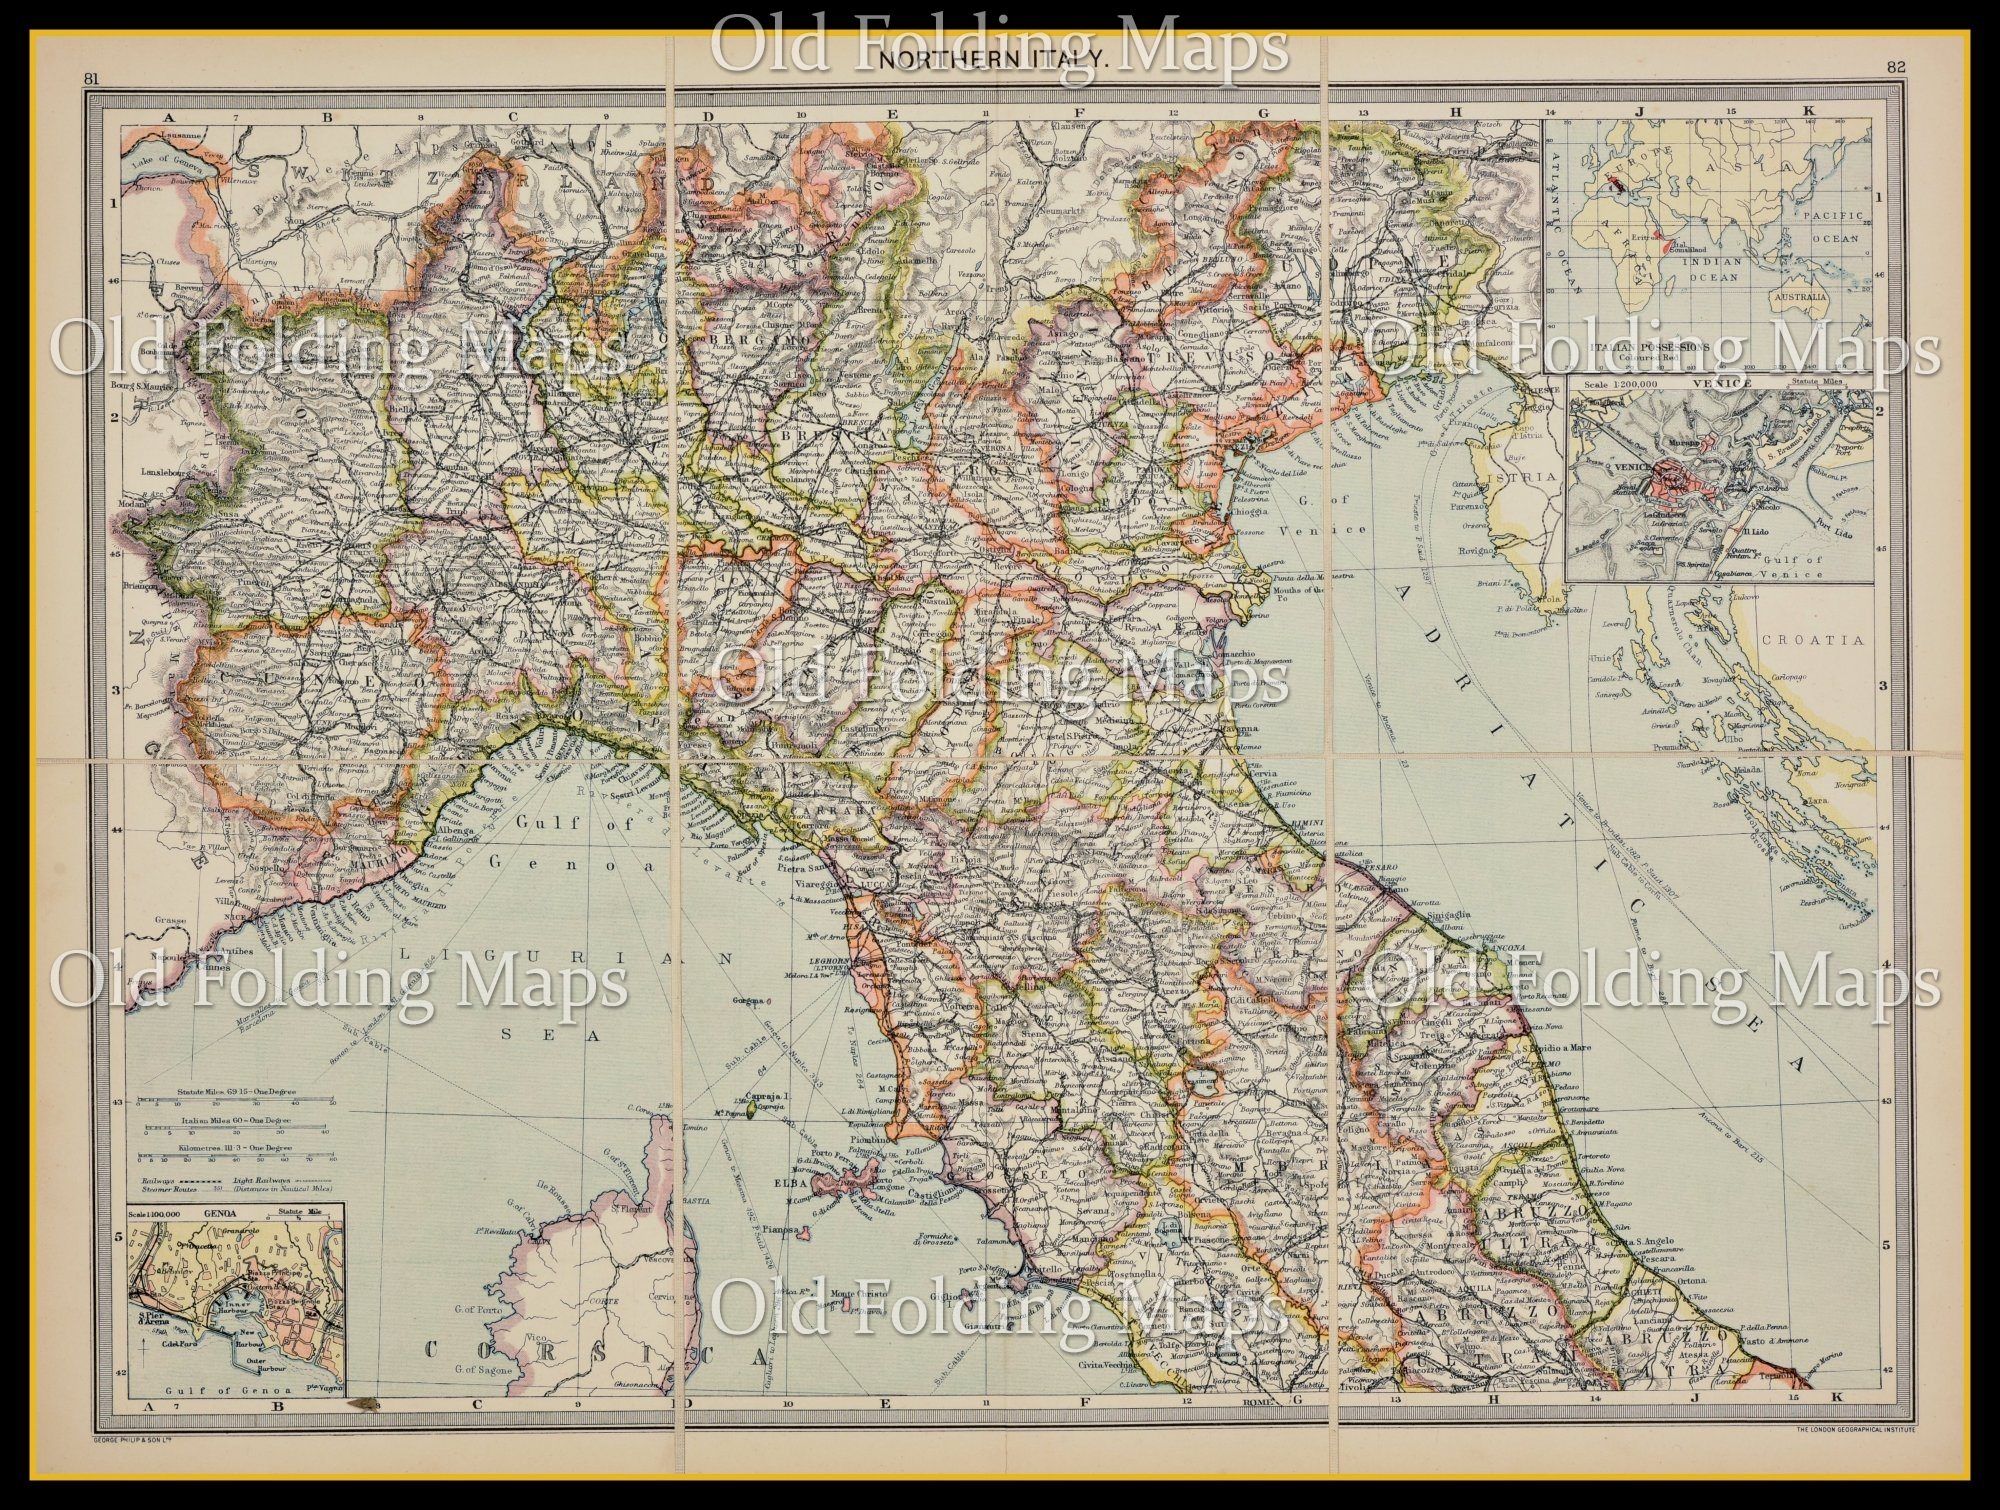 Old Map of Northern Italy circa 1900